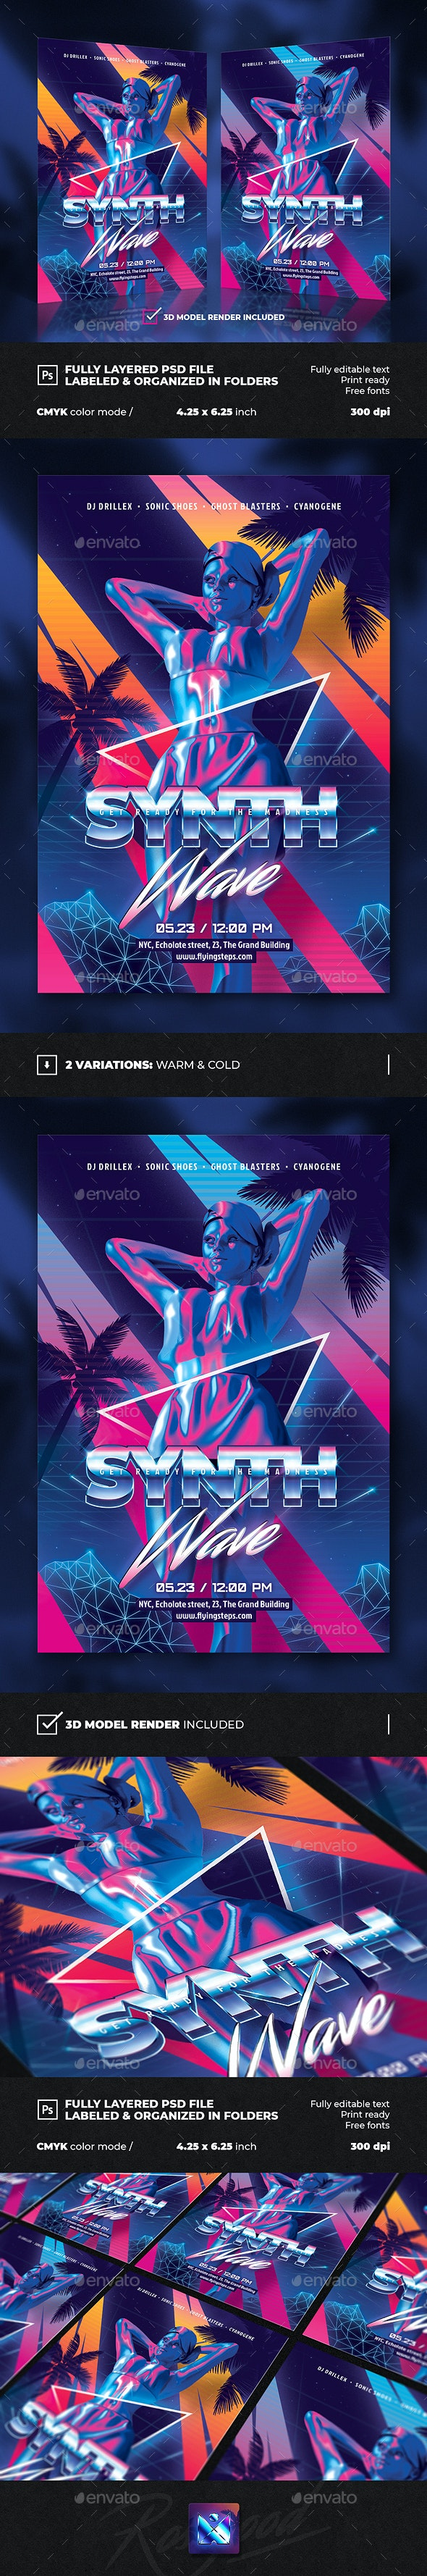 Synth Retro Wave Party Flyer - Clubs & Parties Events